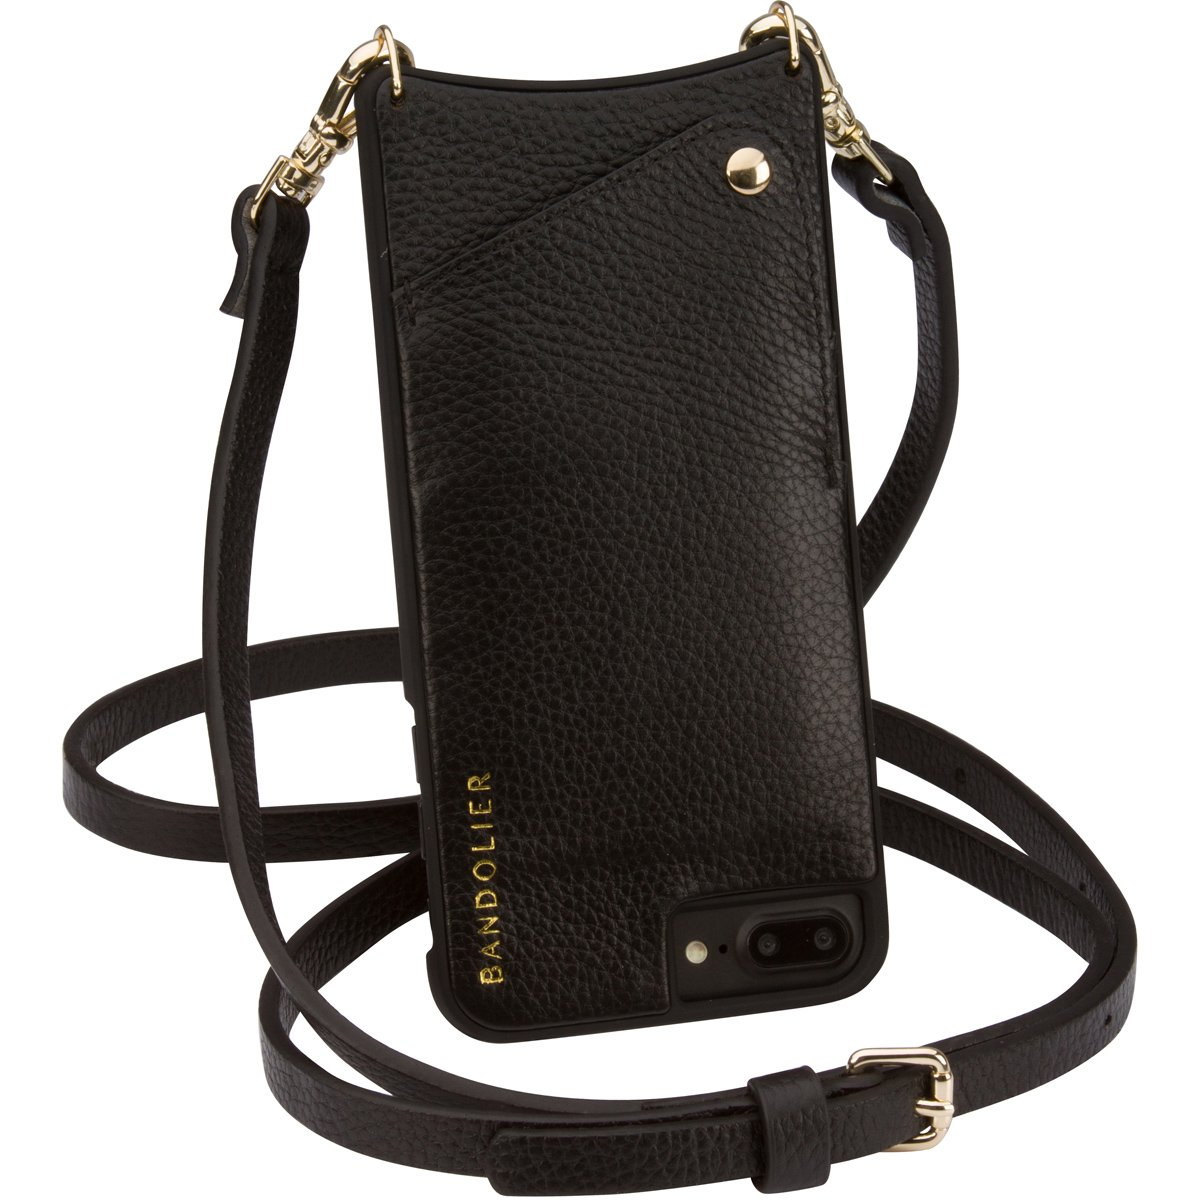 Bandolier [Emma] Crossbody Phone Case and Wallet - Compatible with iPhone 8 Plus, 7 Plus, 6 Plus, 6s Plus - Black Leather with Gold Accent